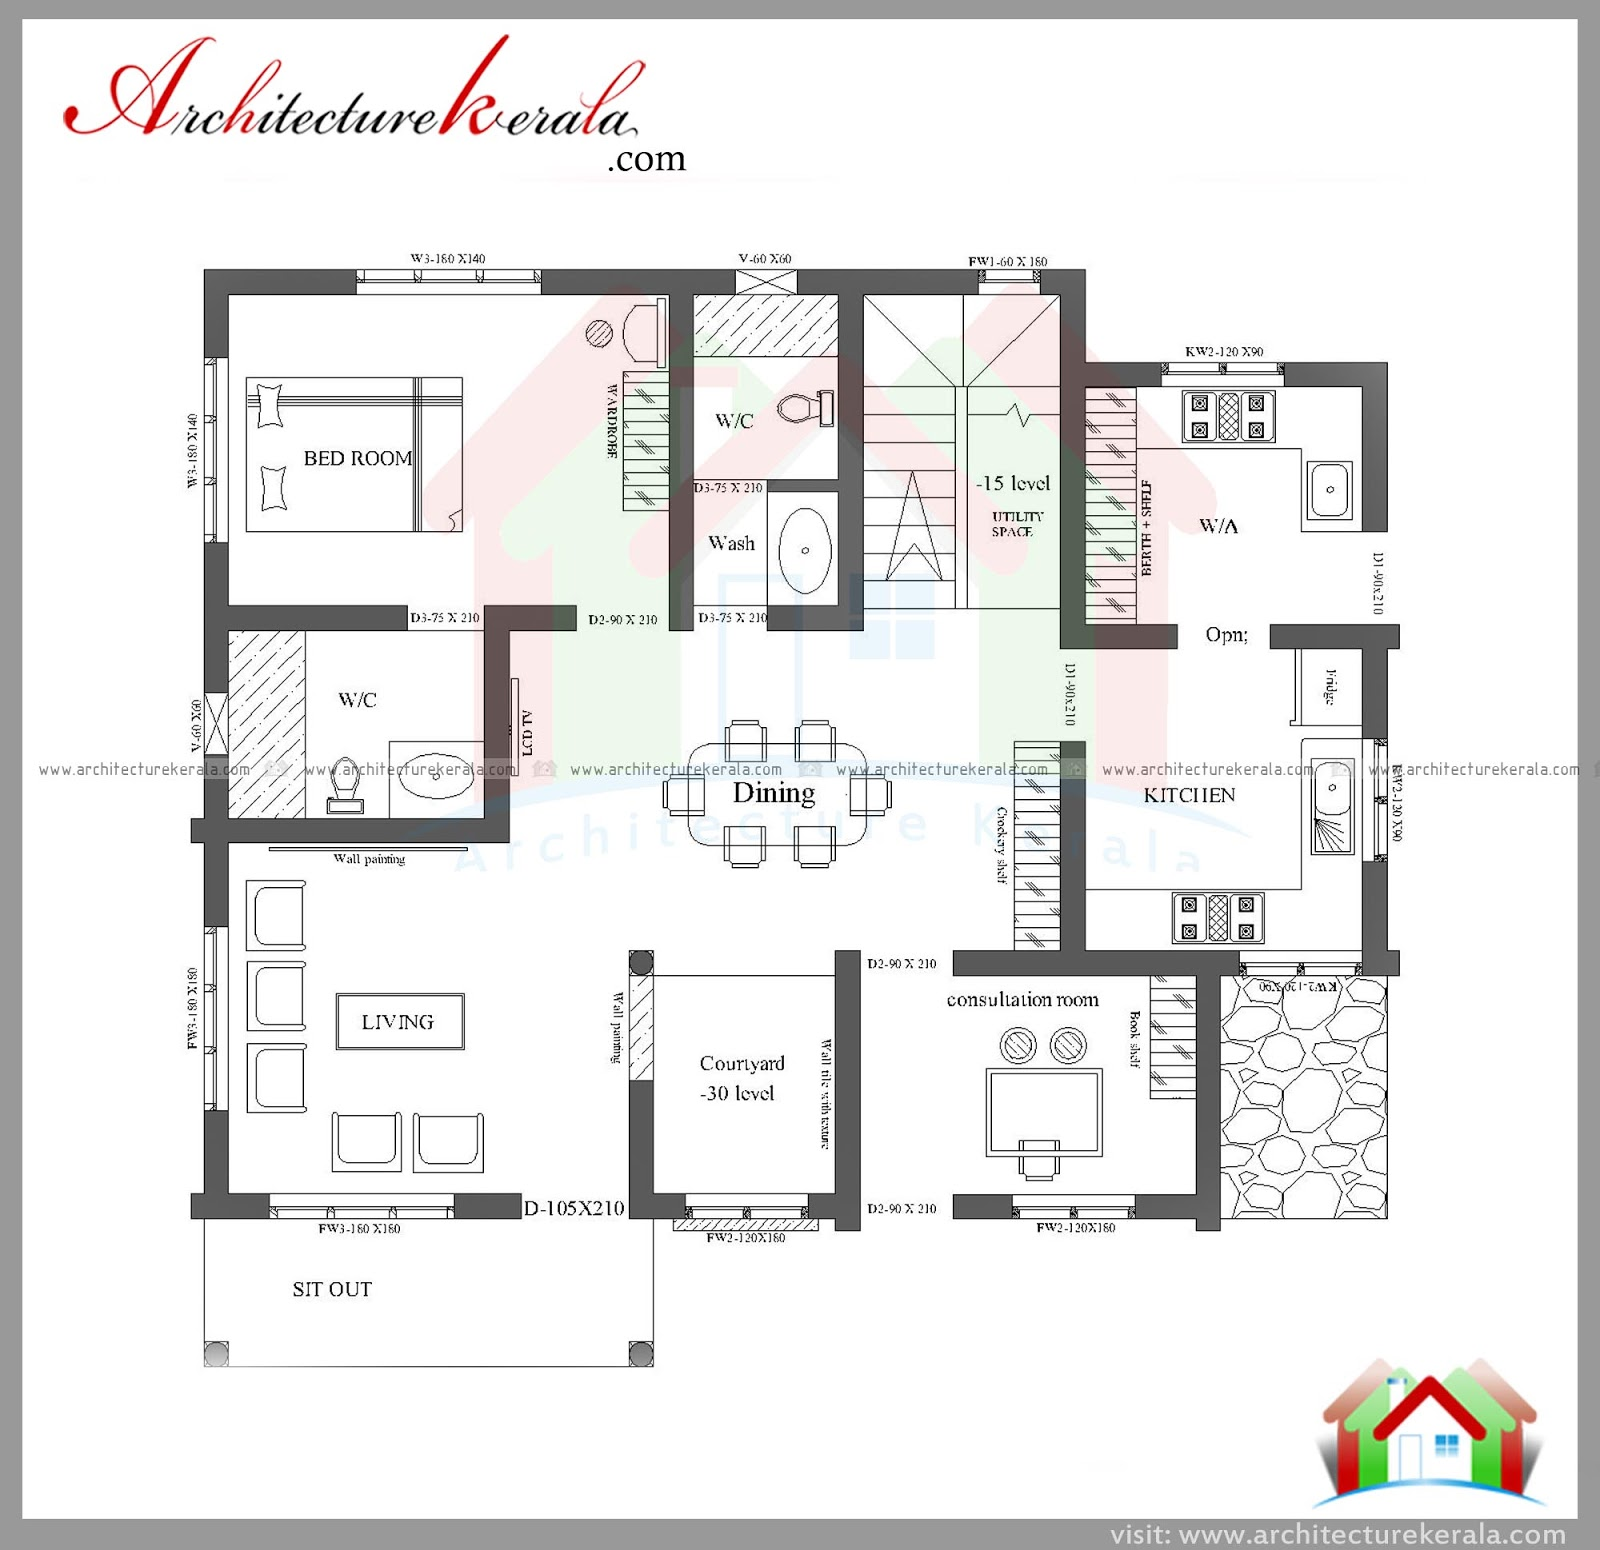 Three bedroom house plan and elevation in 2000 sq ft for 3 bedroom house plans